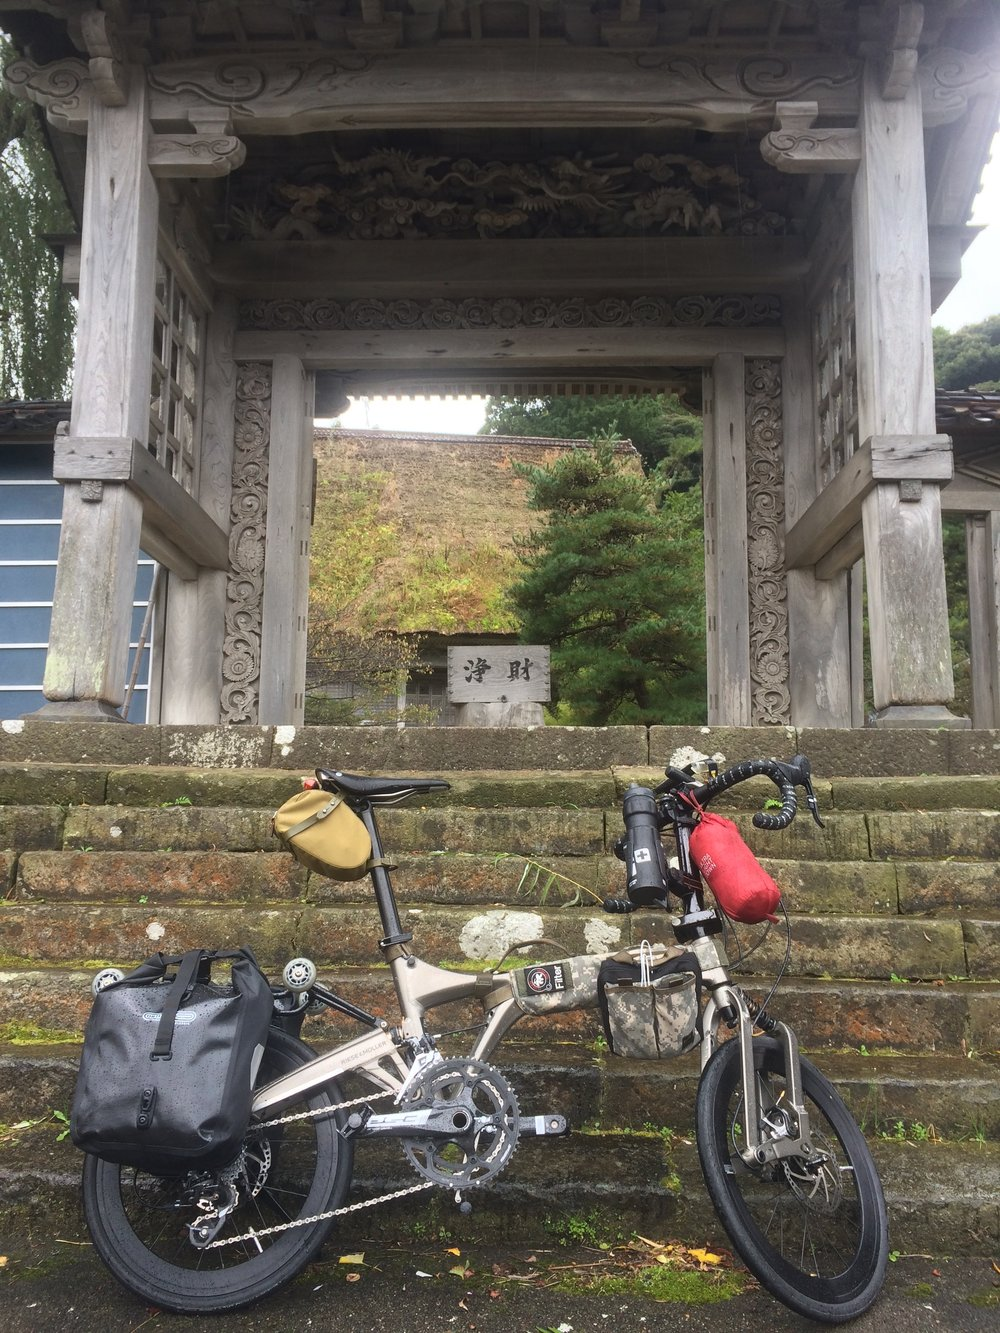 Parking in front of the old wooden temple gates.